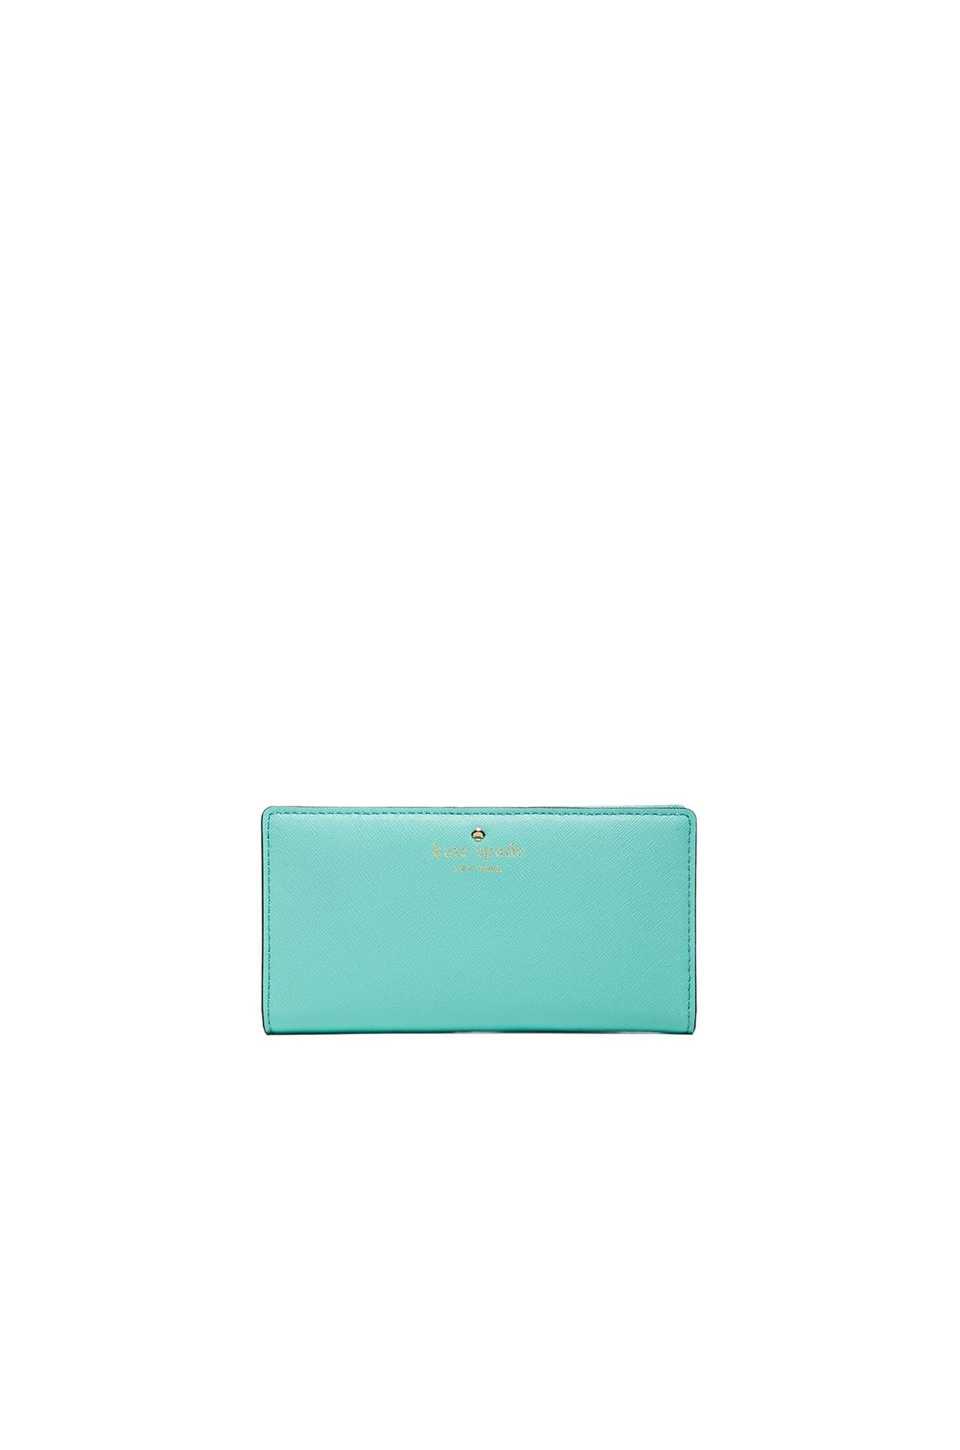 kate spade new york Stacy Continental Wallet in Fresh Air